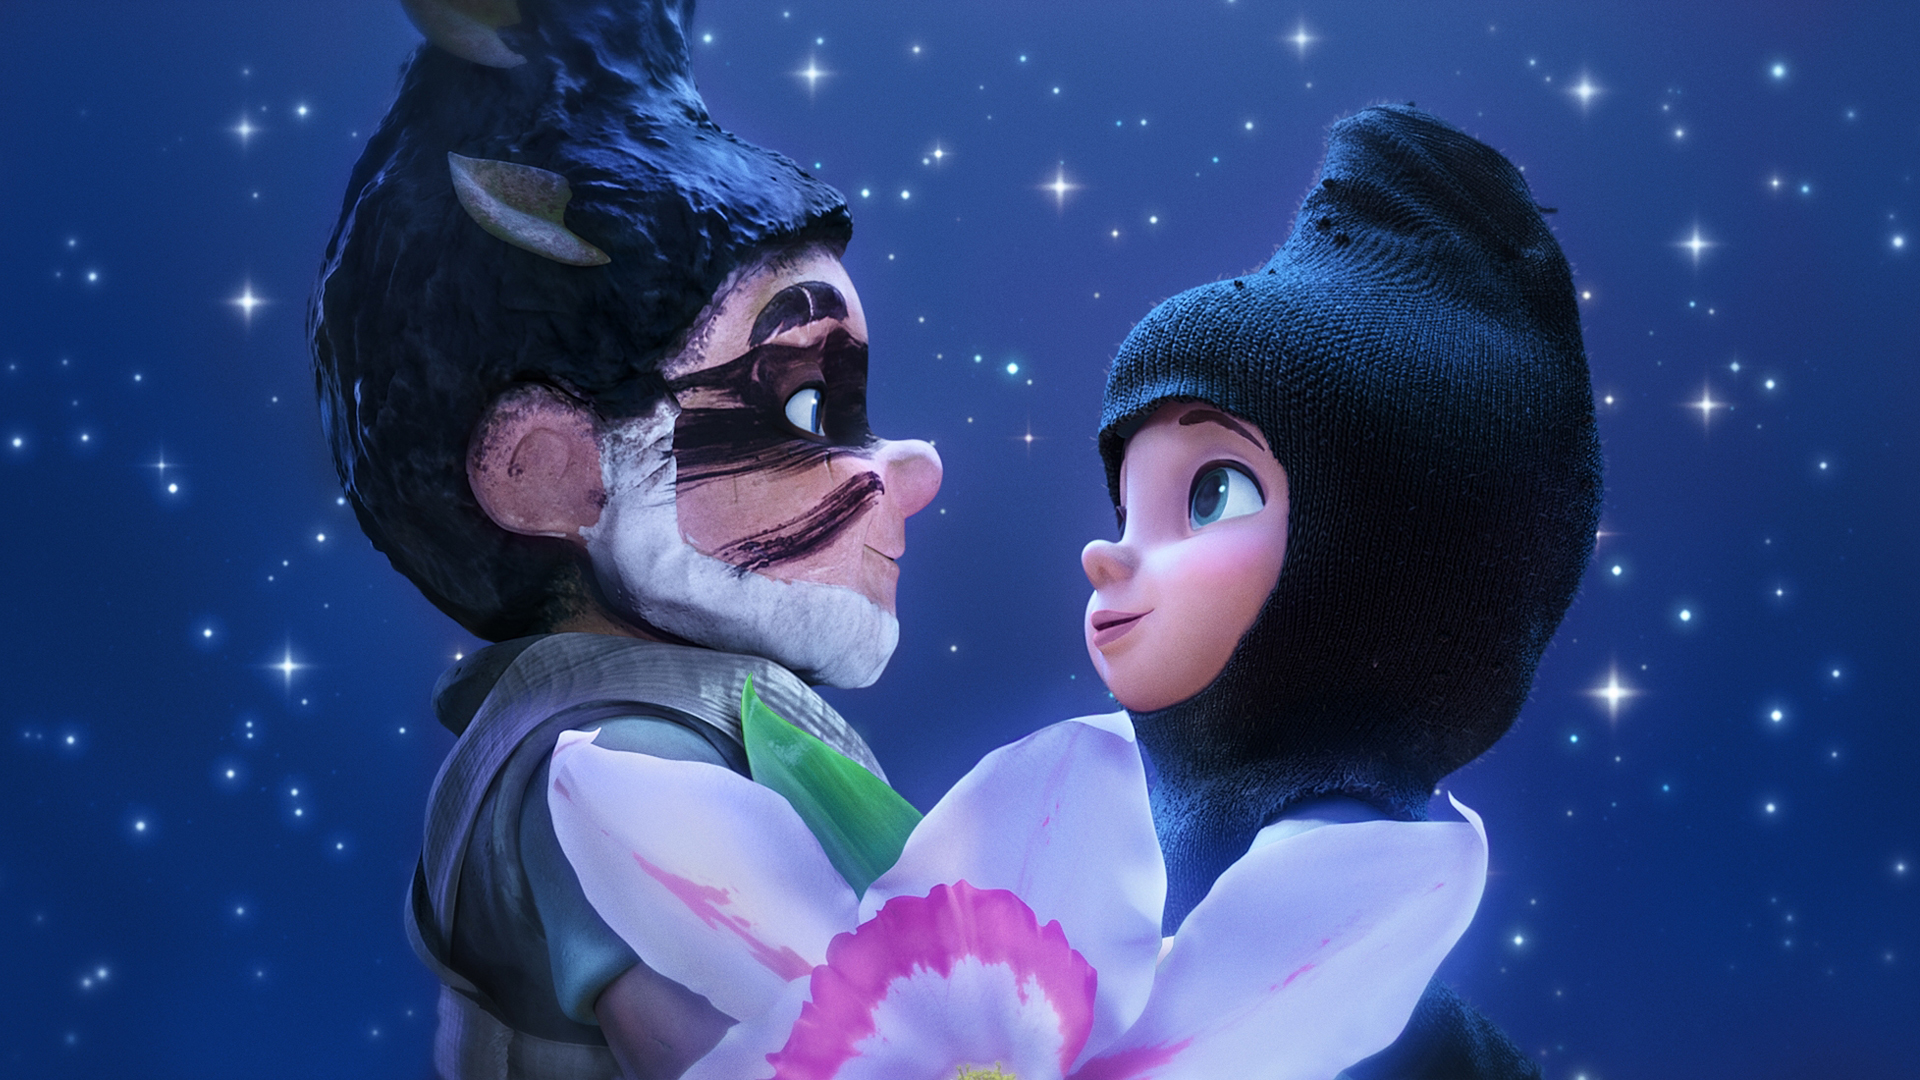 Gnomeo And Juliet Wallpaper